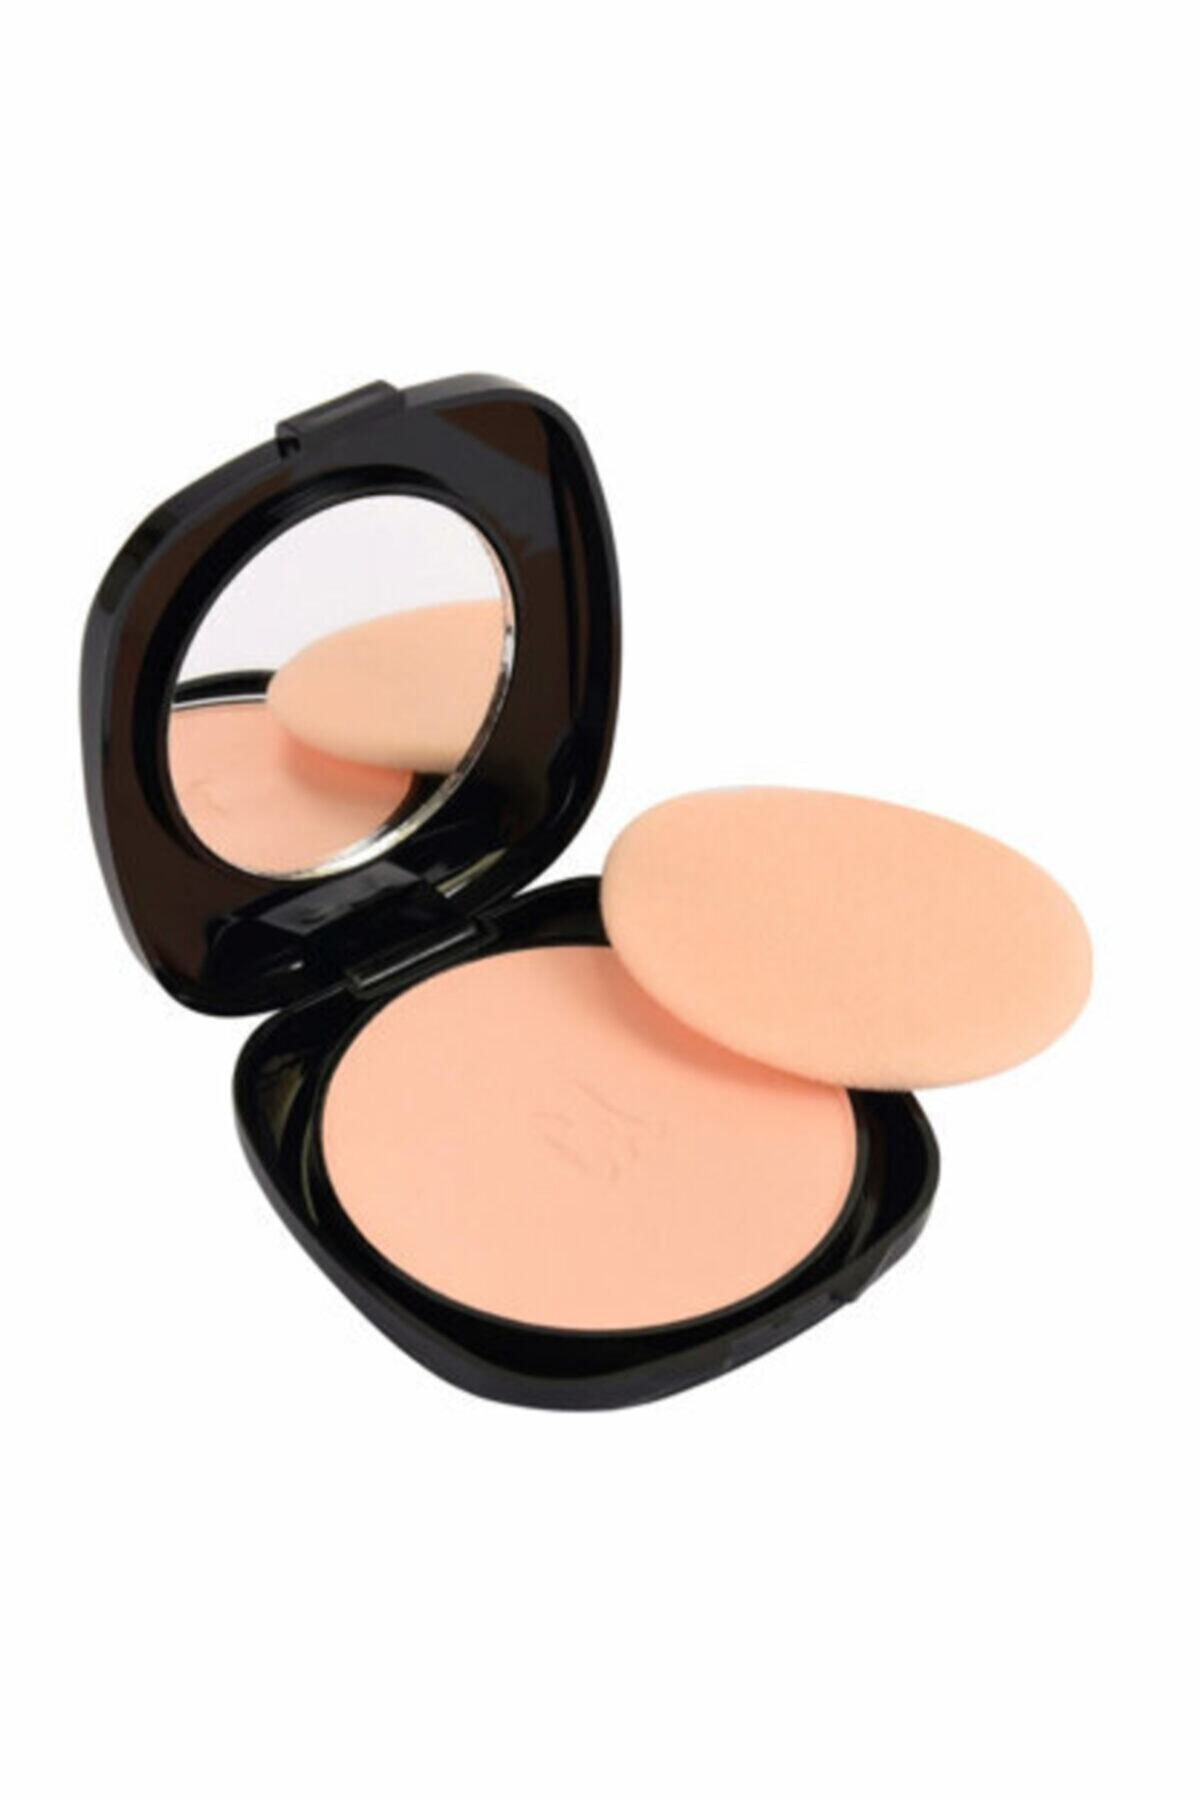 Catherine Arley Pudra - Compact Powder 02 8691167026006 1